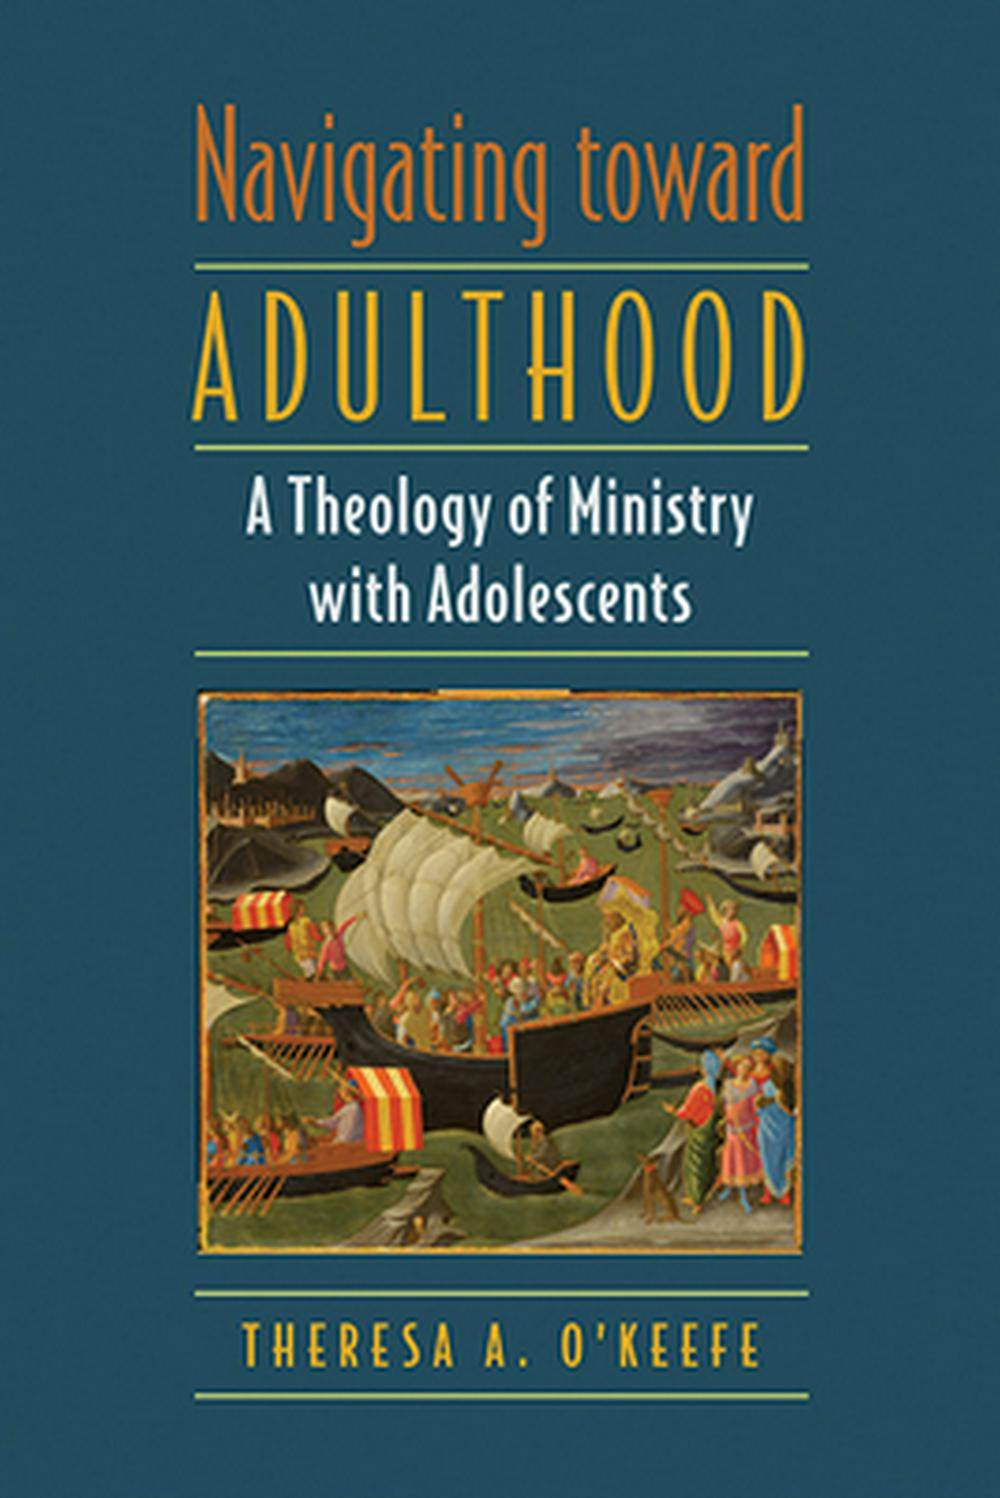 Navigating toward AdulthoodA Theology of Ministry with Adolescents by Theresa A. O'Keefe, ISBN: 9780809153985